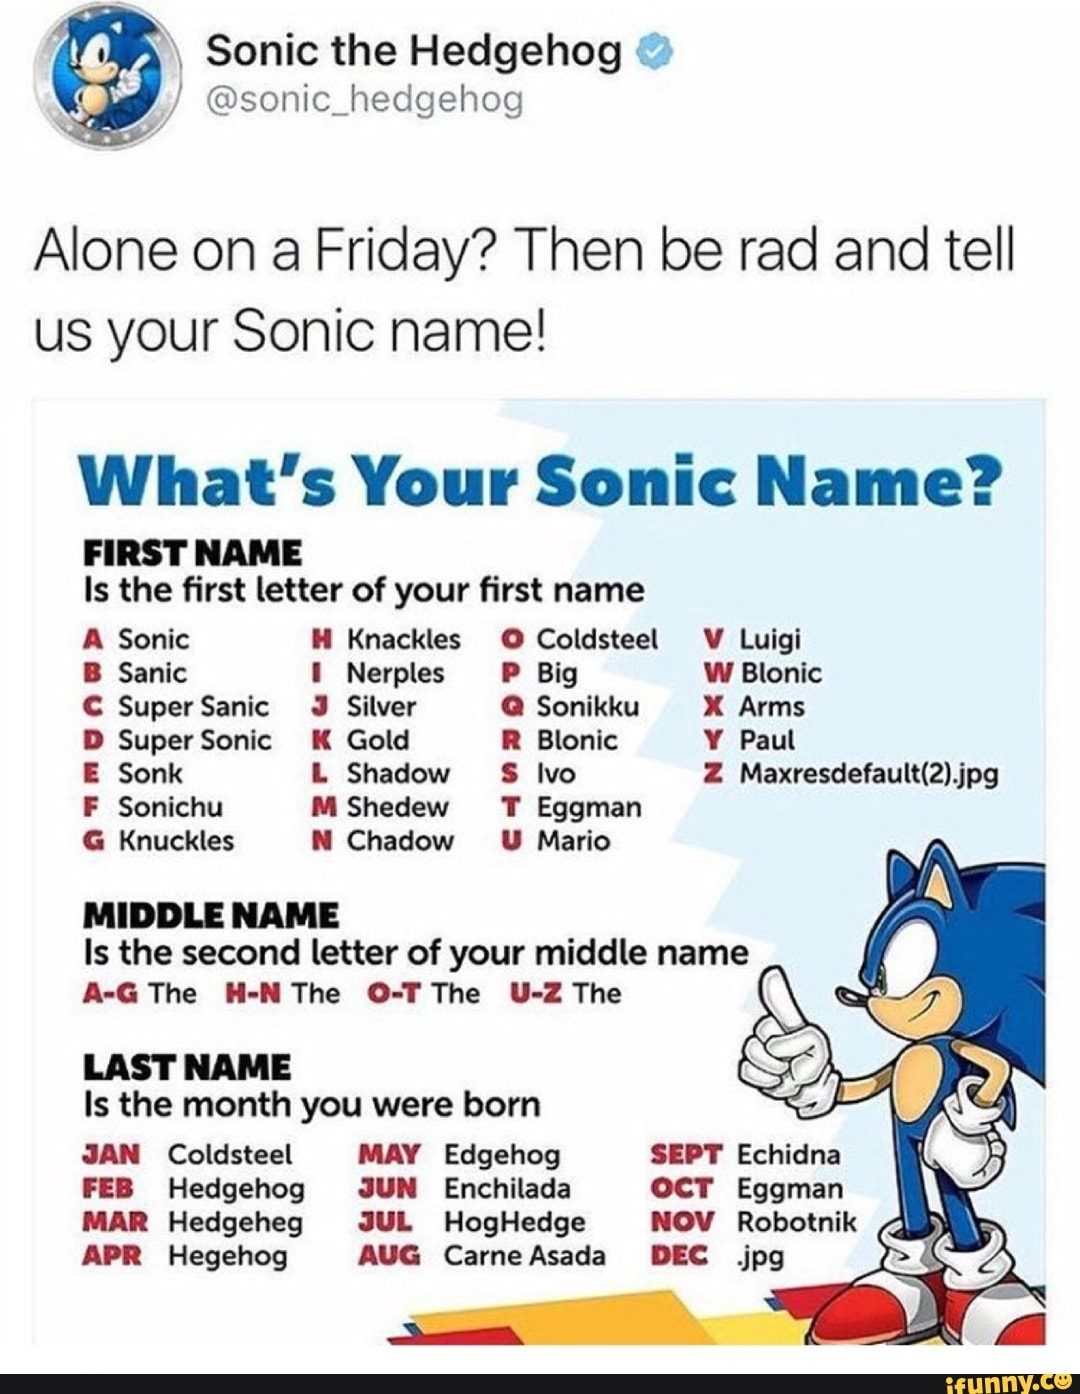 Alone on a Friday? Then be rad and tell us your Sonic name